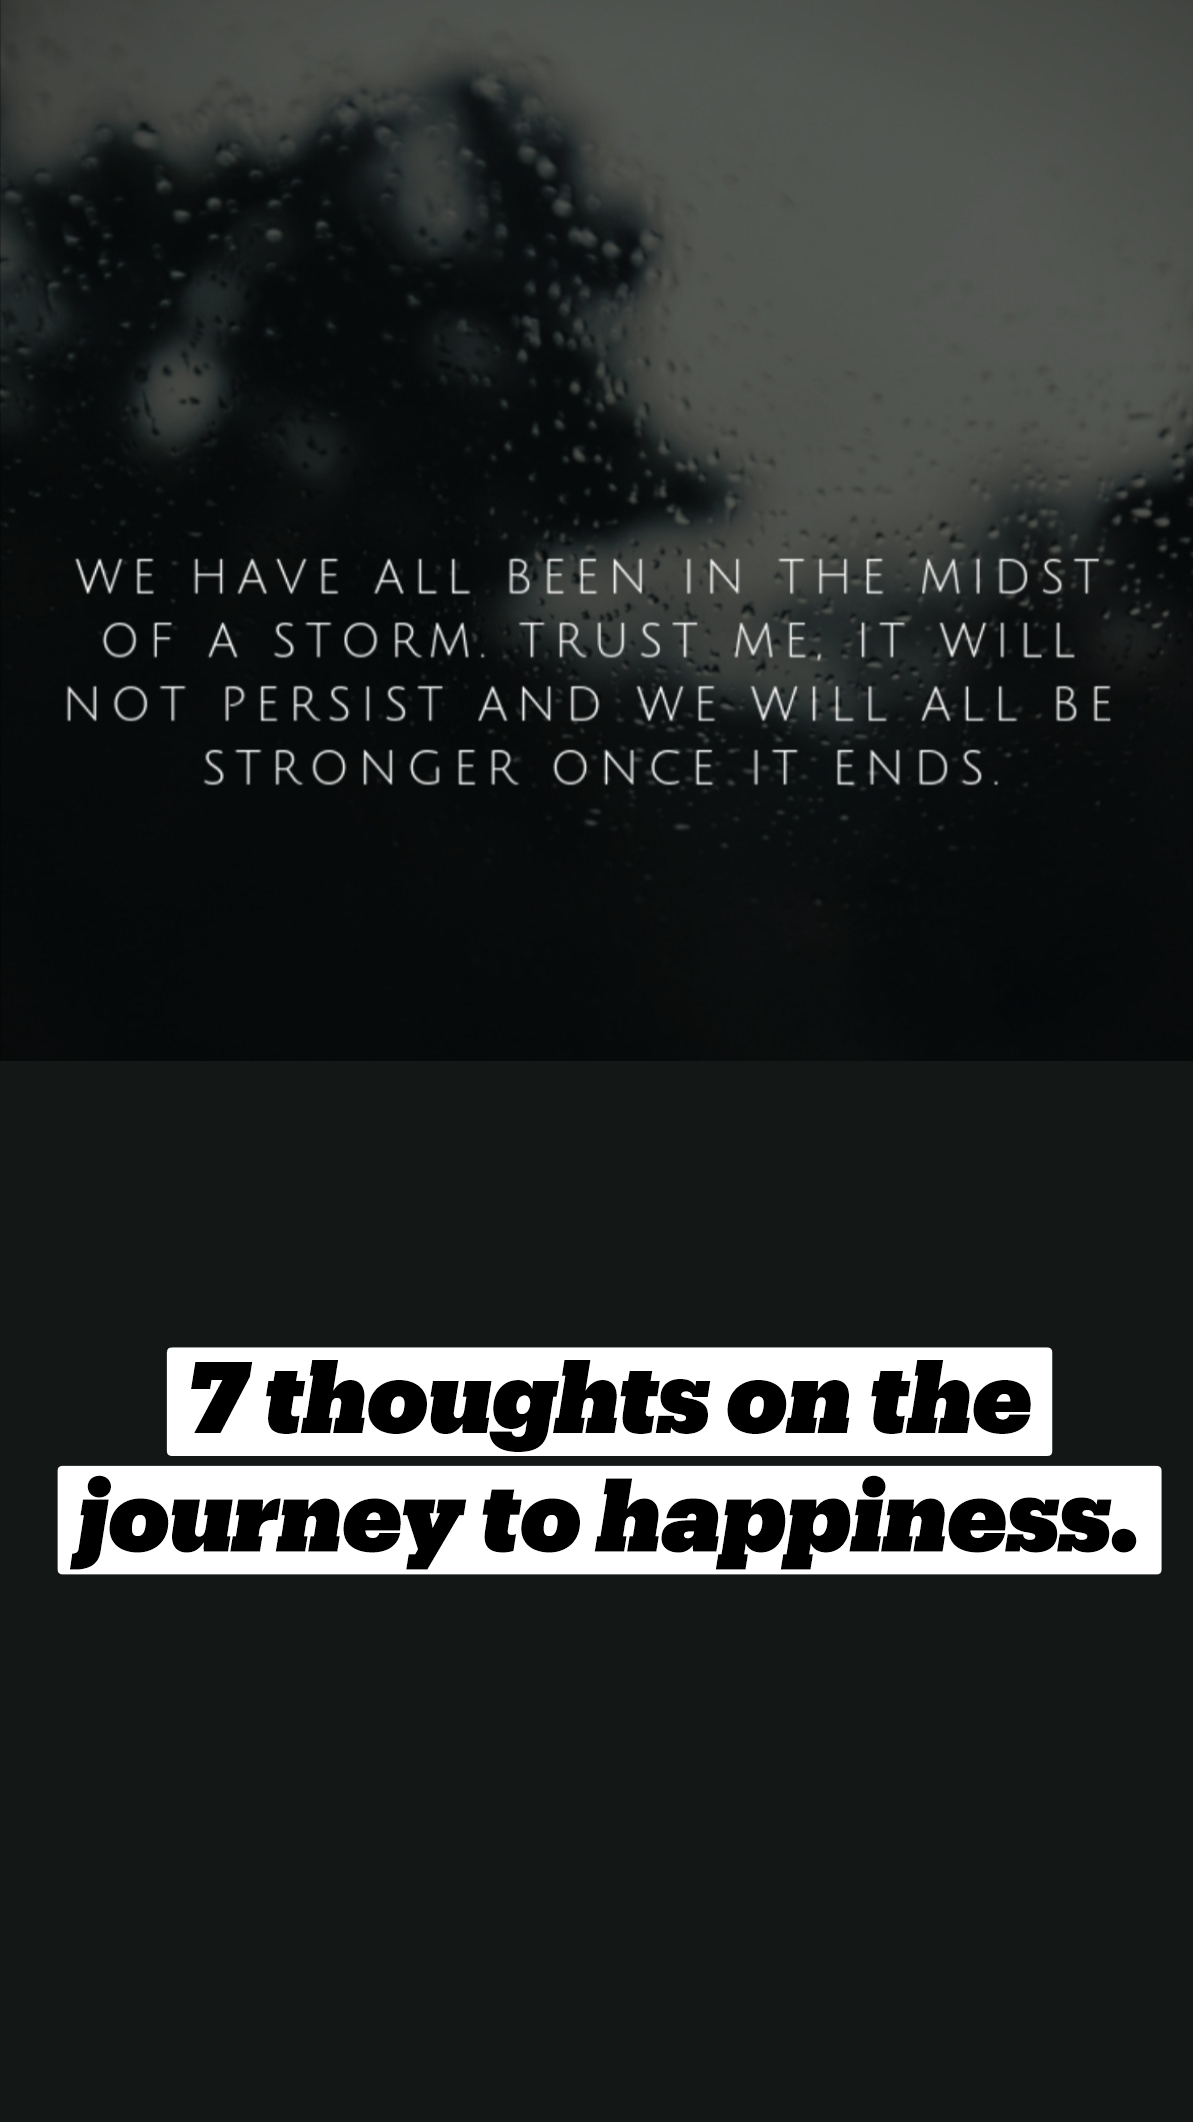 7 thoughts on the journey to happiness.